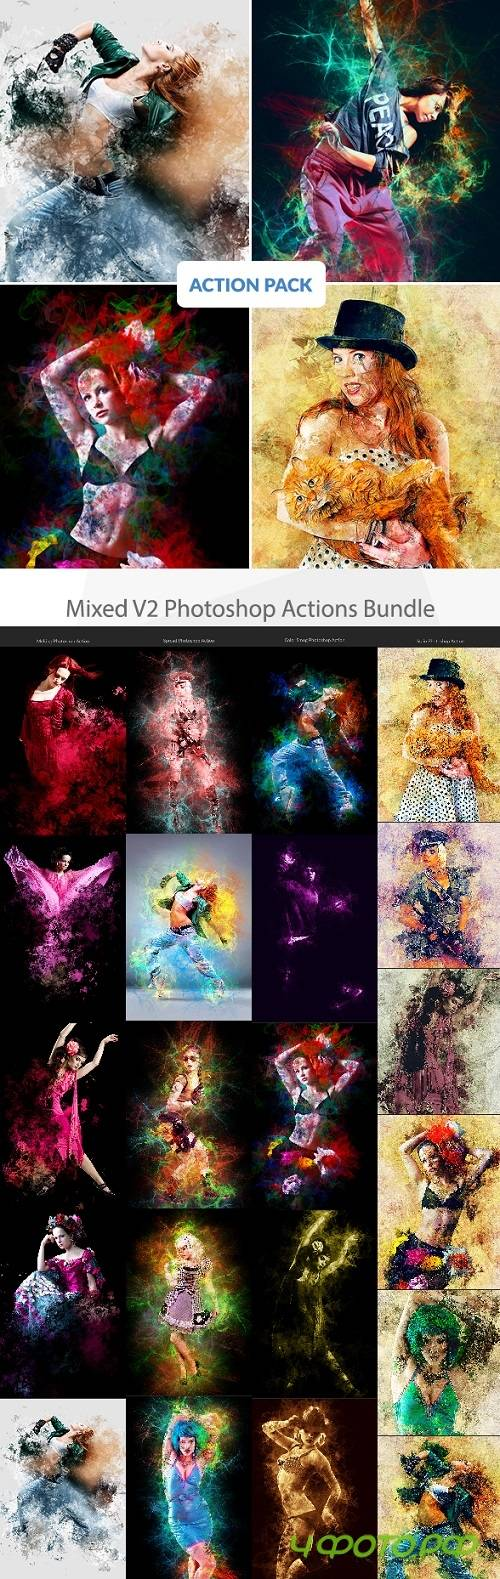 Mixed V2 Photoshop Action Bundle - 19317198